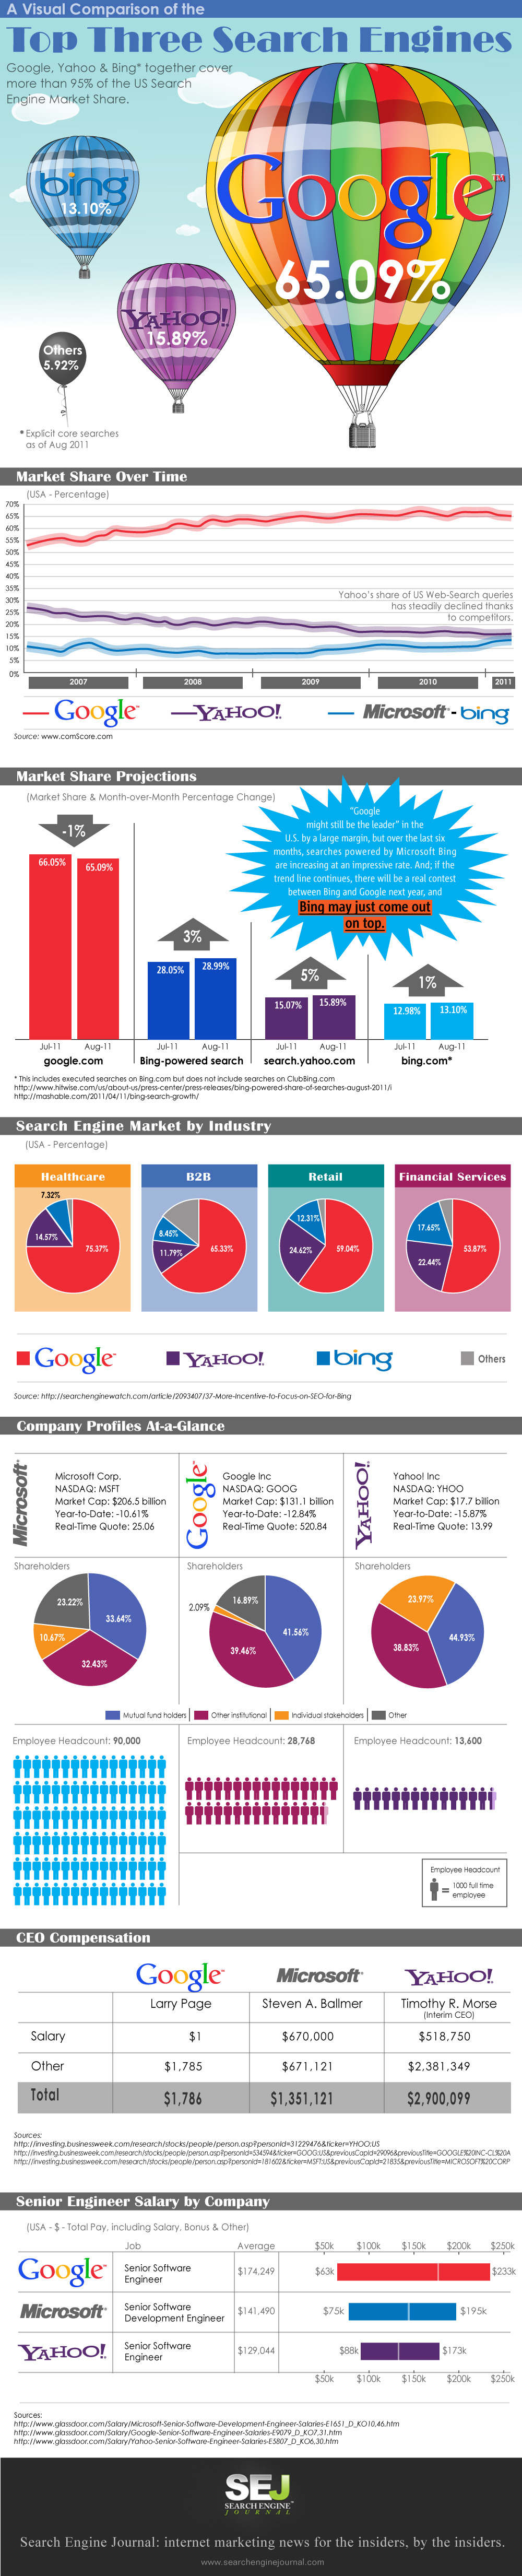 Comparing the Top Three Search Engines